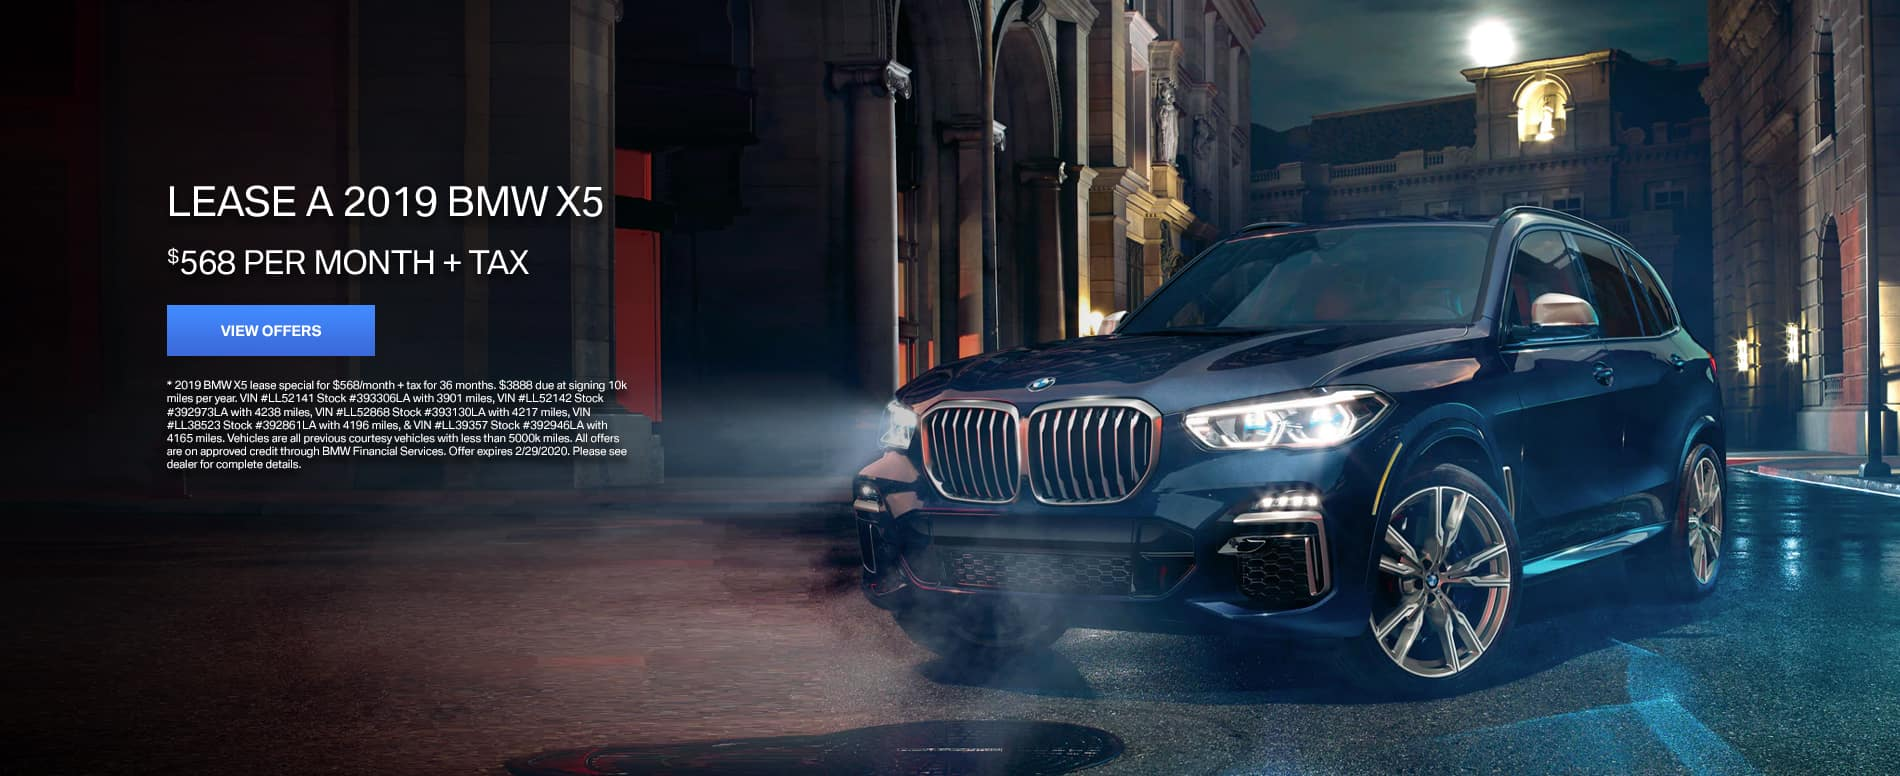 X5 Lease offer